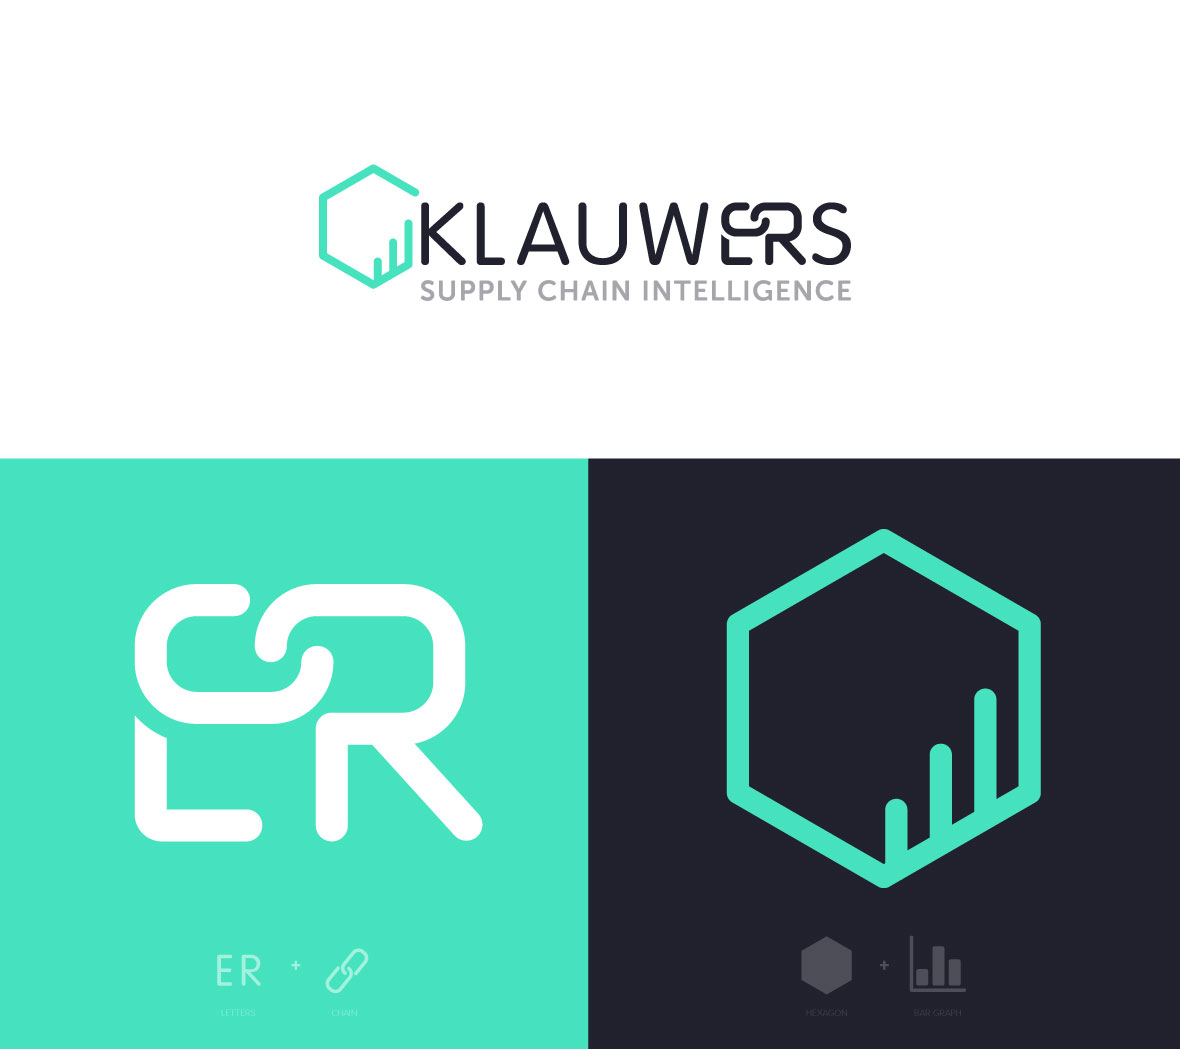 Detail Klauwers Supply Chain Intelligence